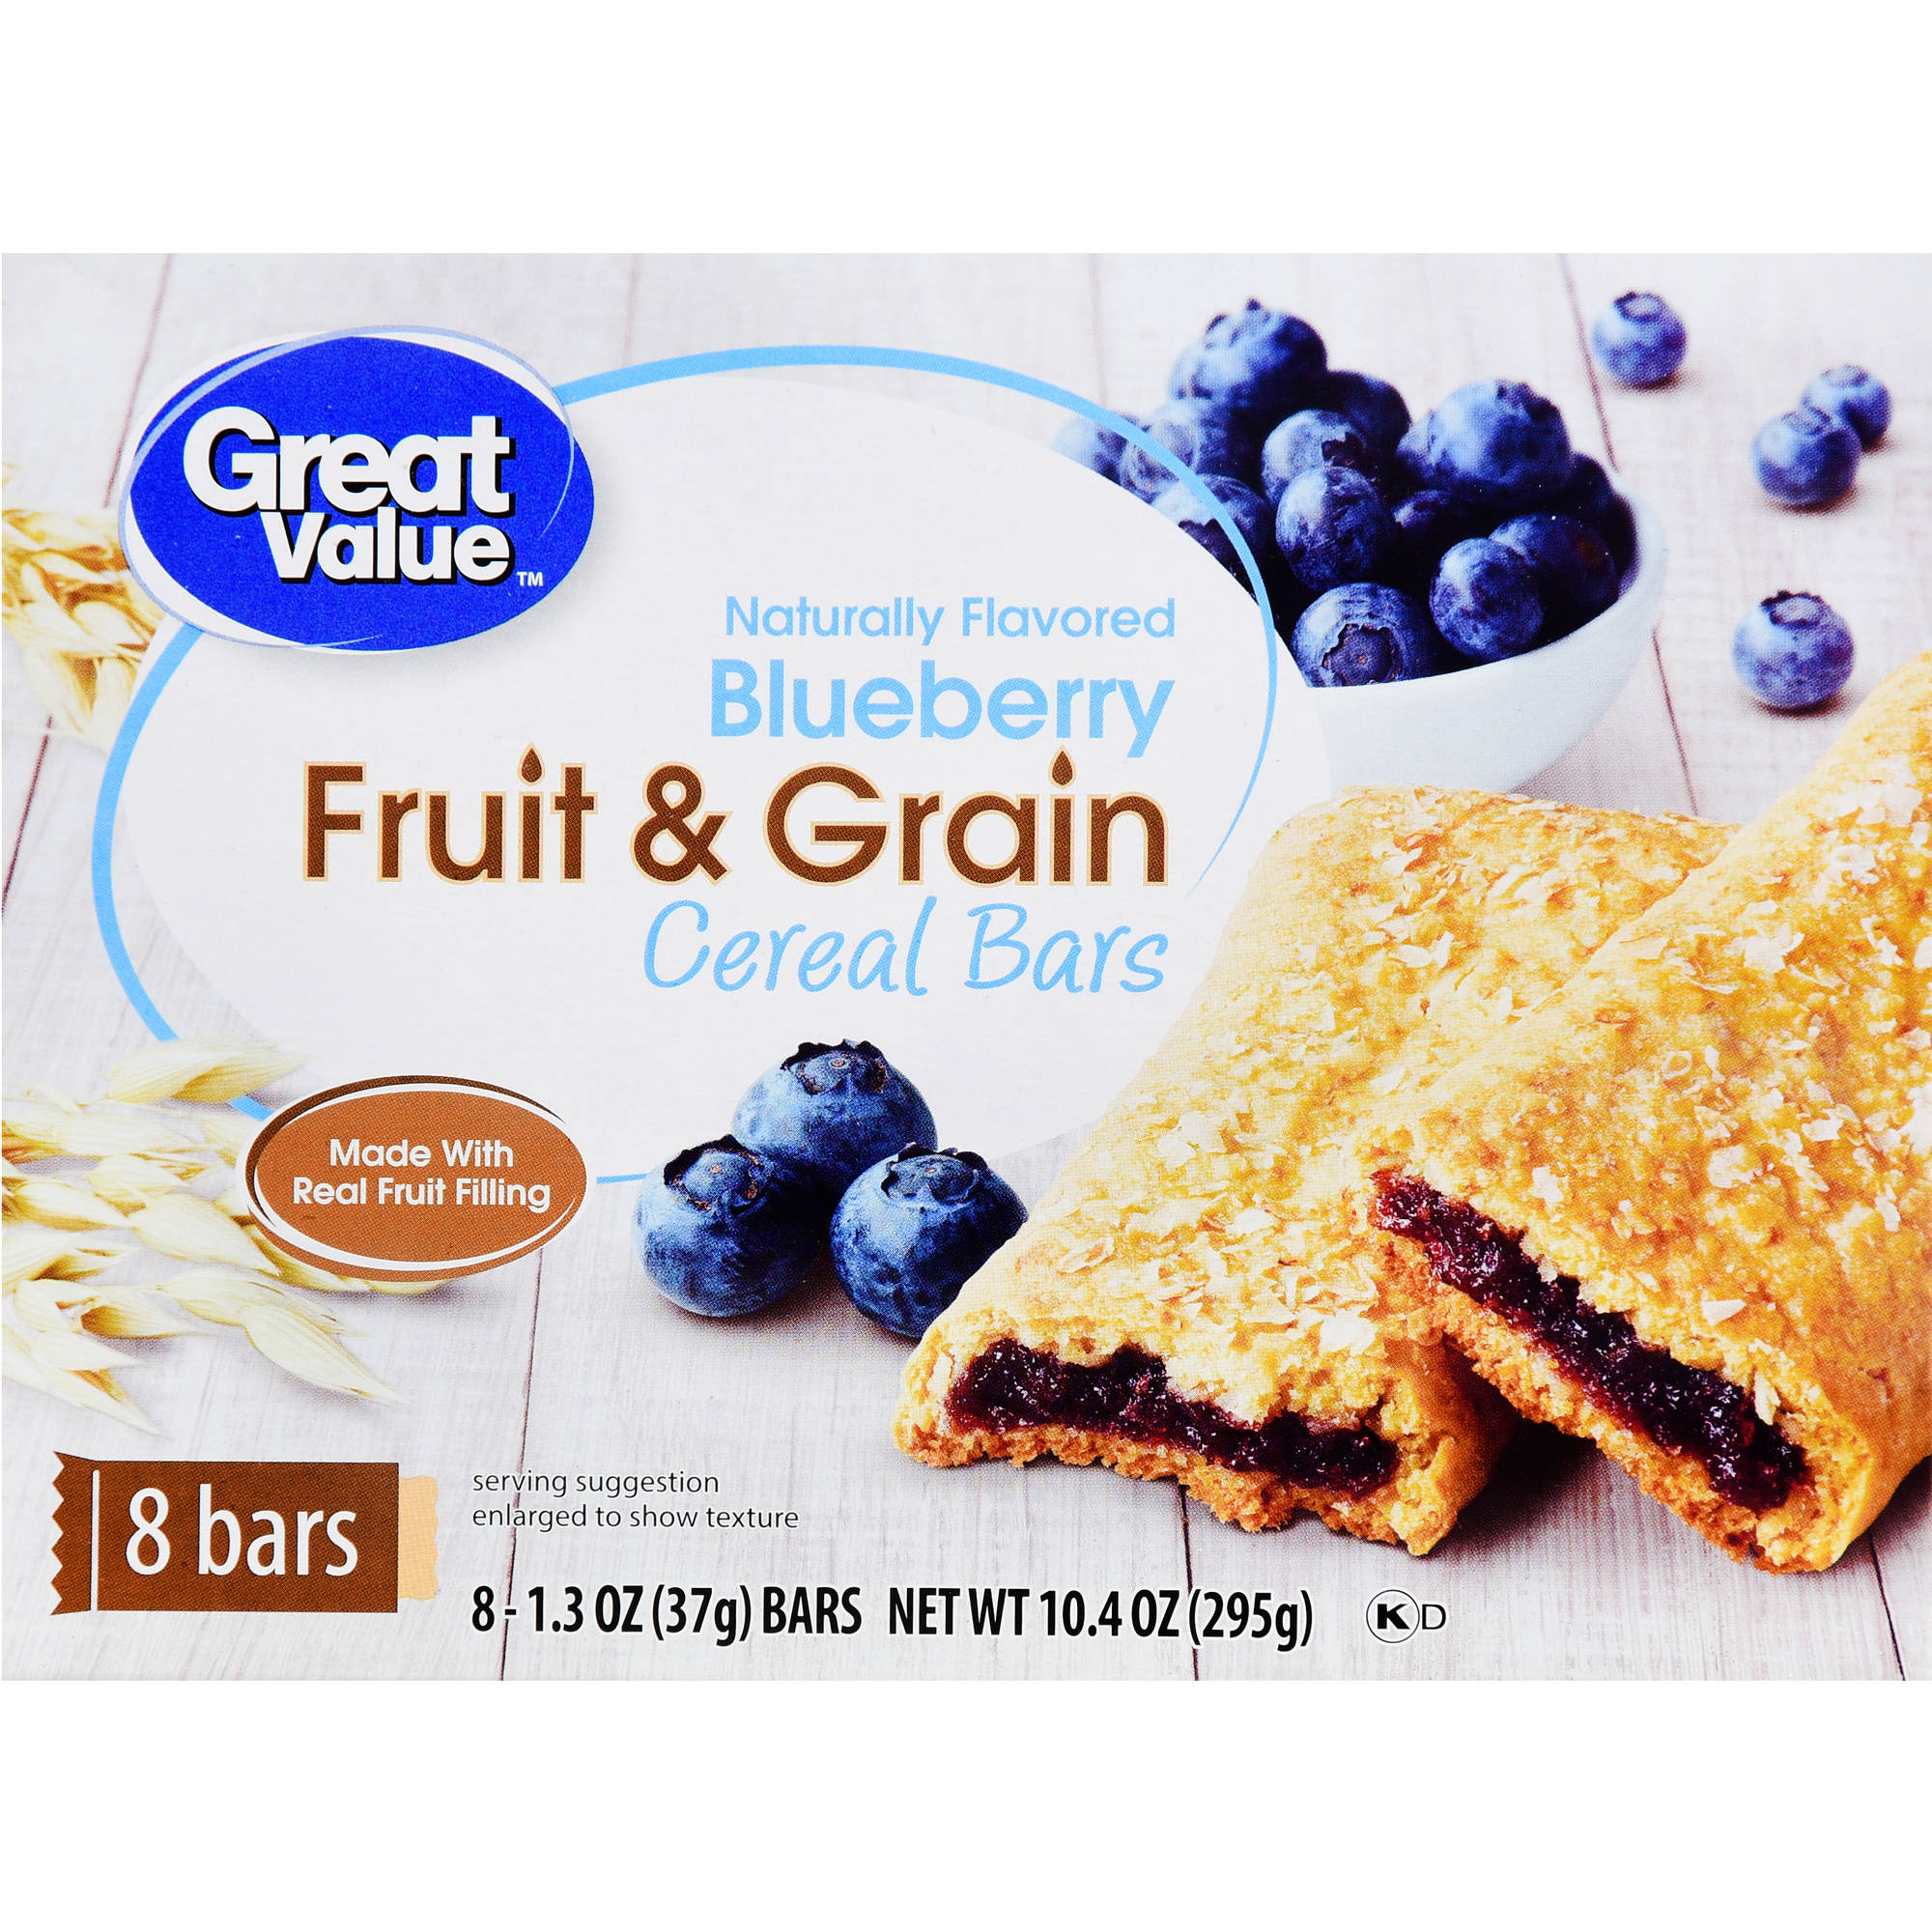 Great Value Blueberry Fruit & Grain Bars, 10.4 oz